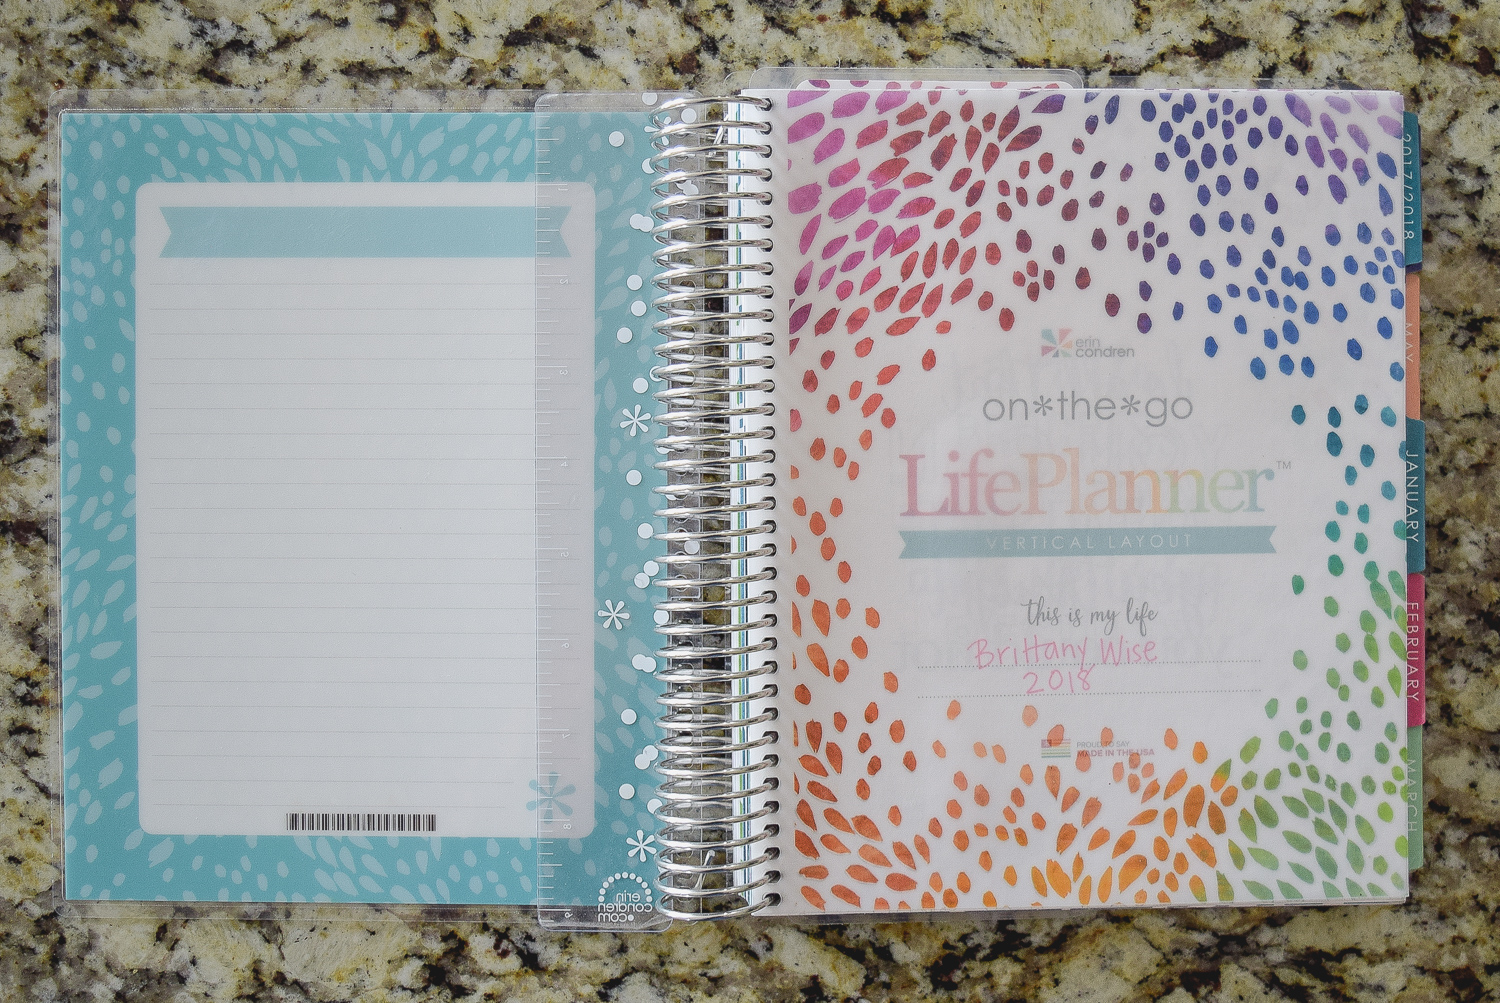 Paper planners are great for those people who love making lists, crossing off tasks, and using a planner effectively to stay organized!